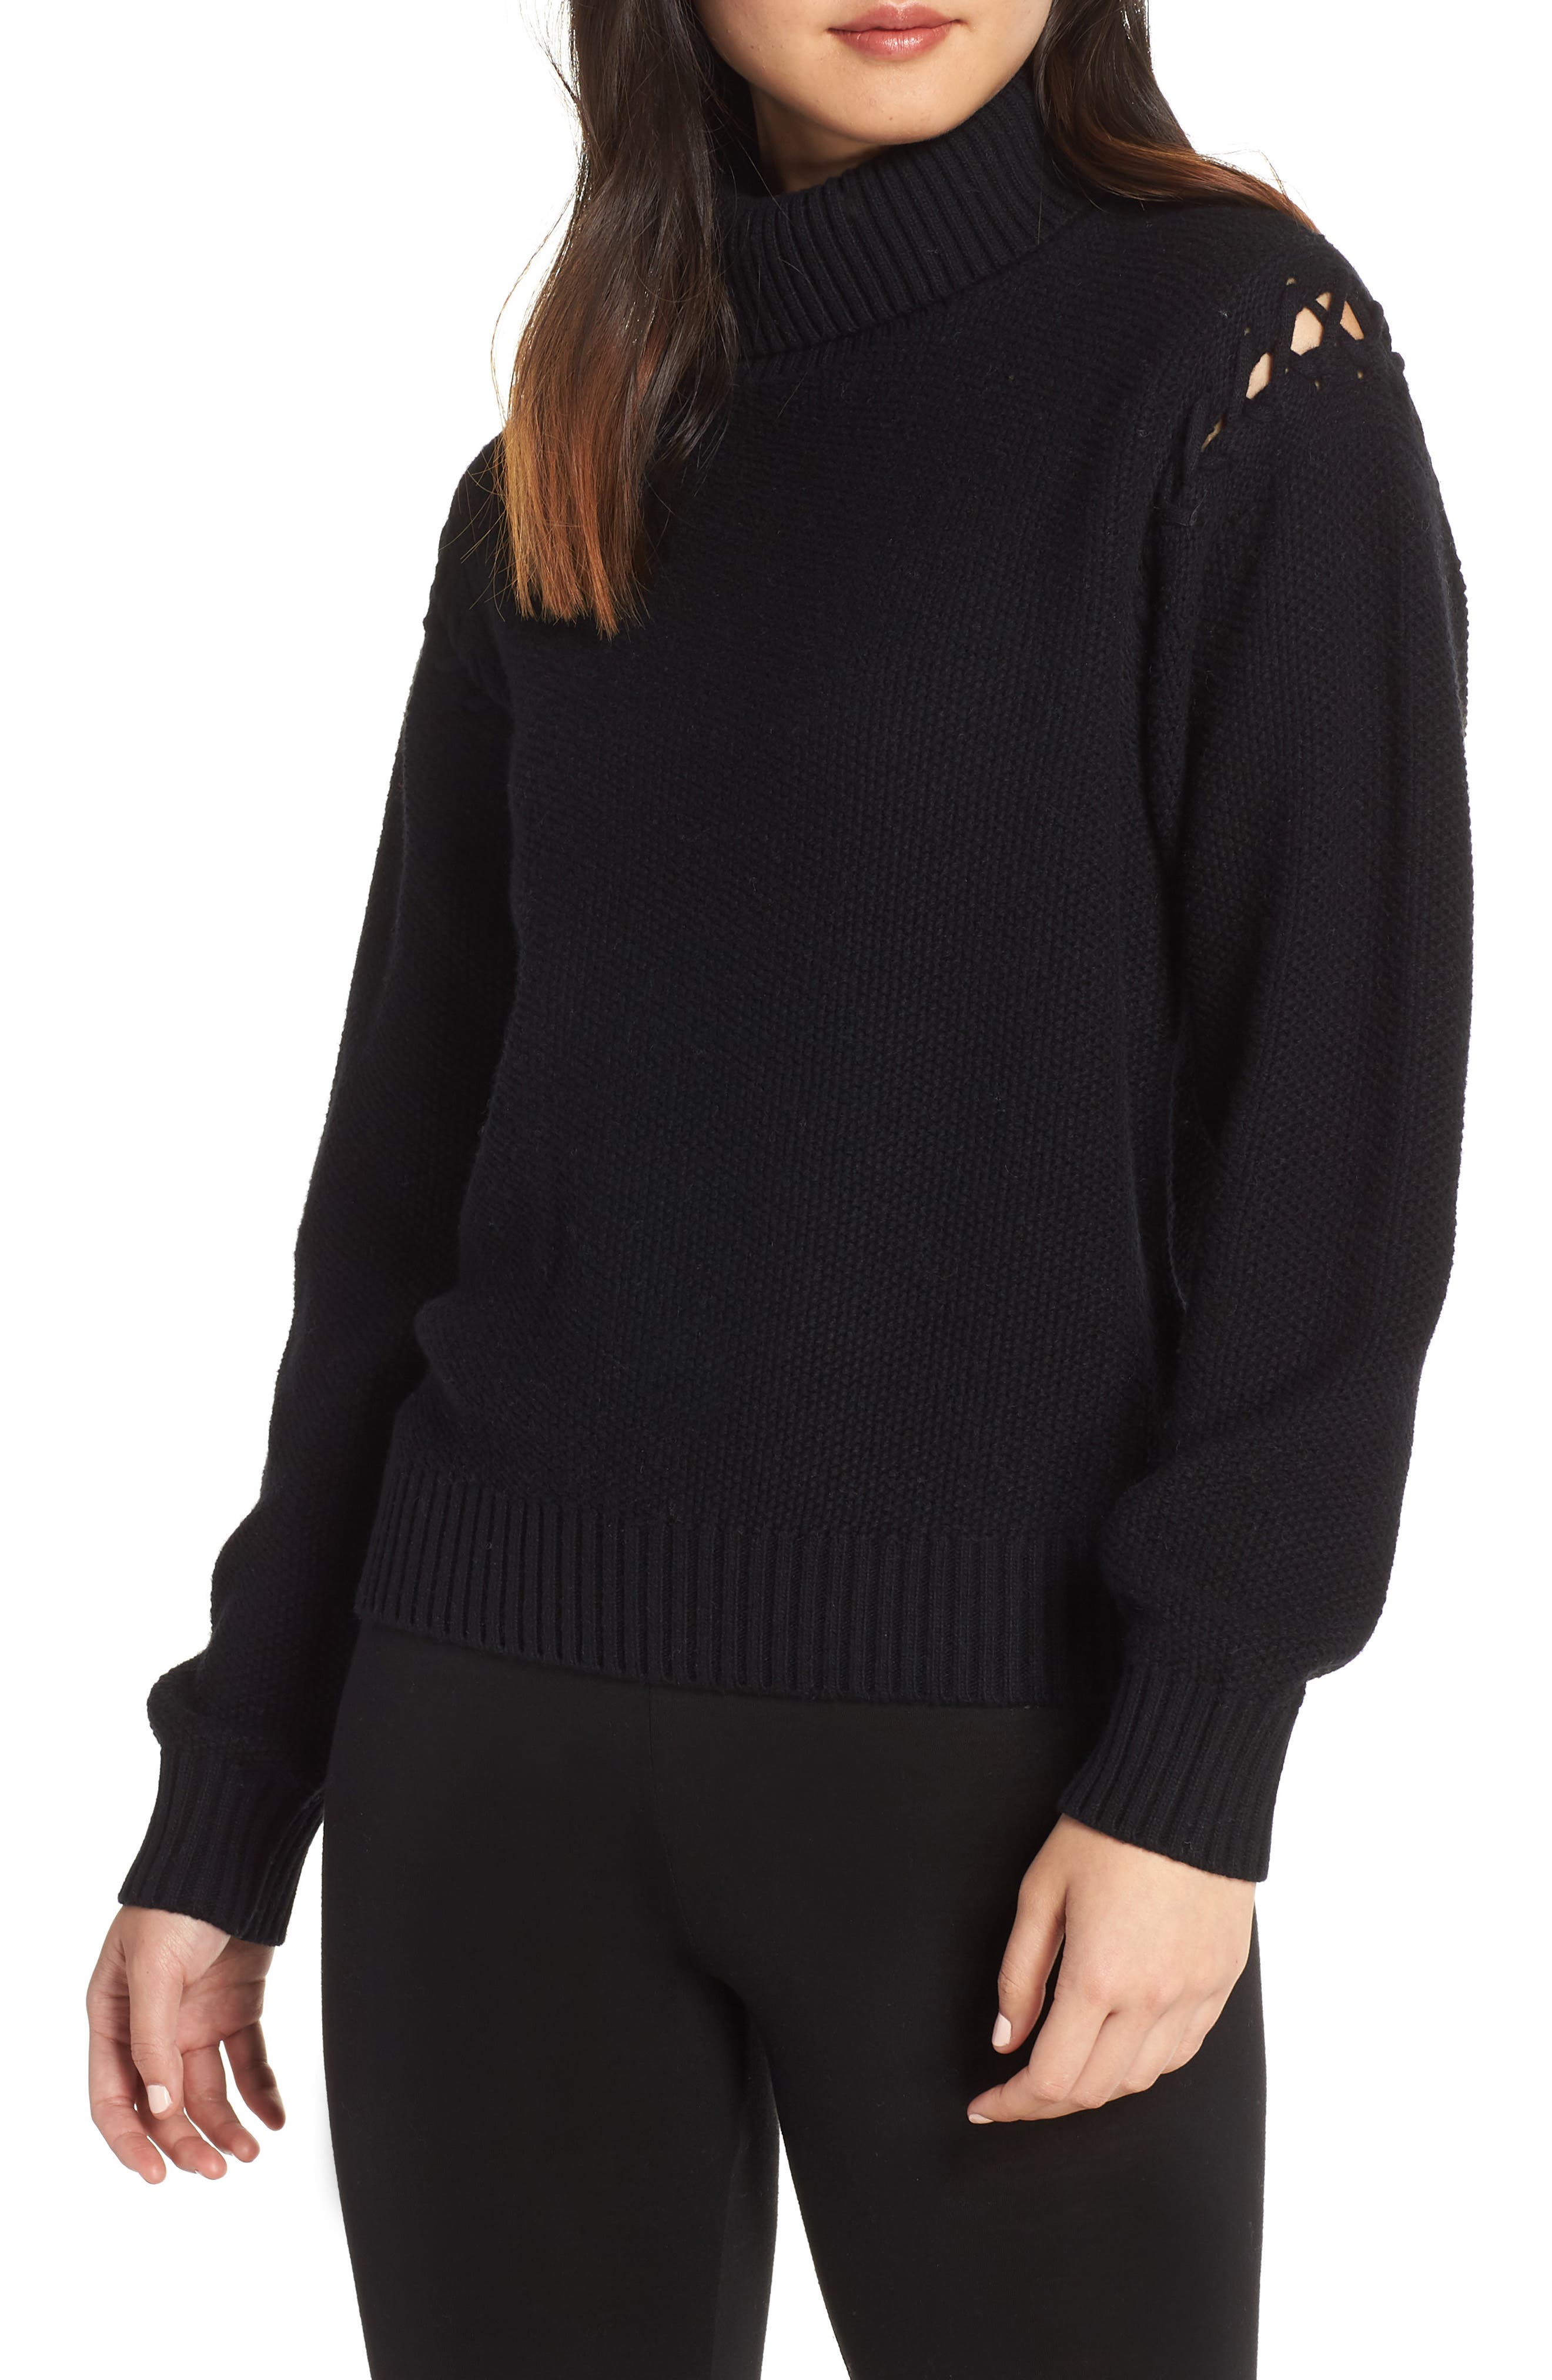 Gisele Turtleneck Sweater,                         Main,                         color, BLACK